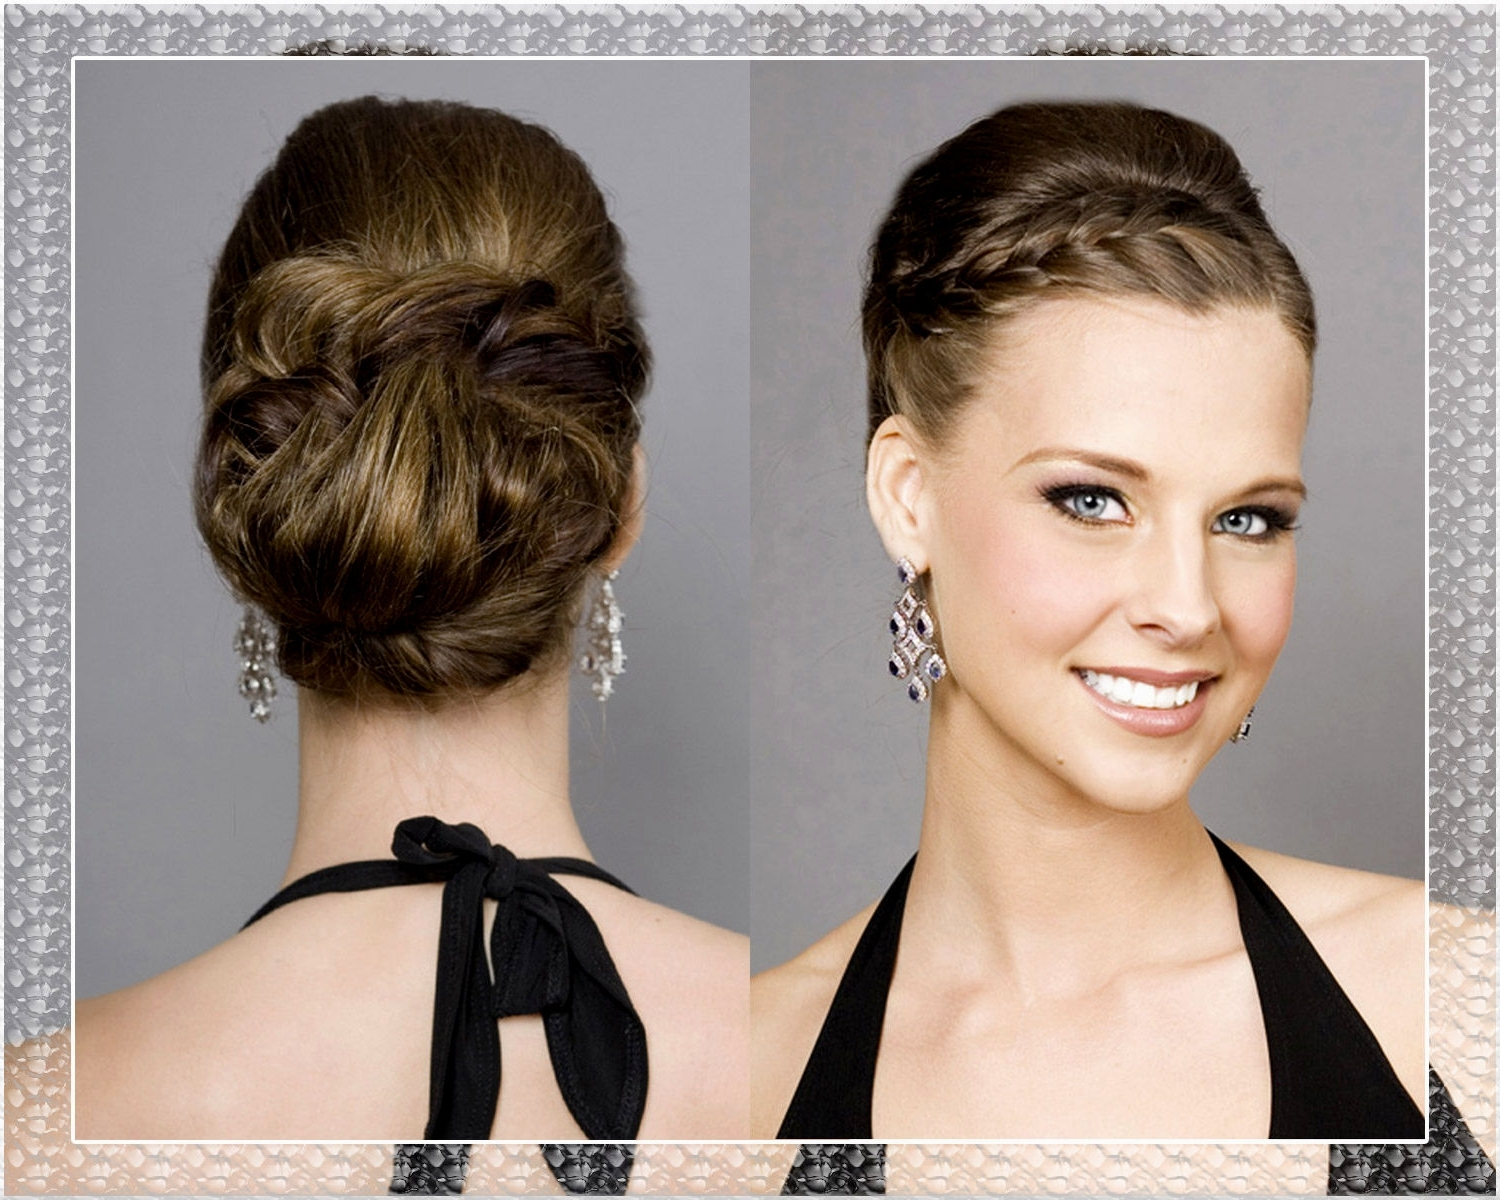 83 Chic Updo Hairstyle Ideas | 50S Hairstyles, Updo And Popular For 50S Hairstyles Updos (Gallery 2 of 15)